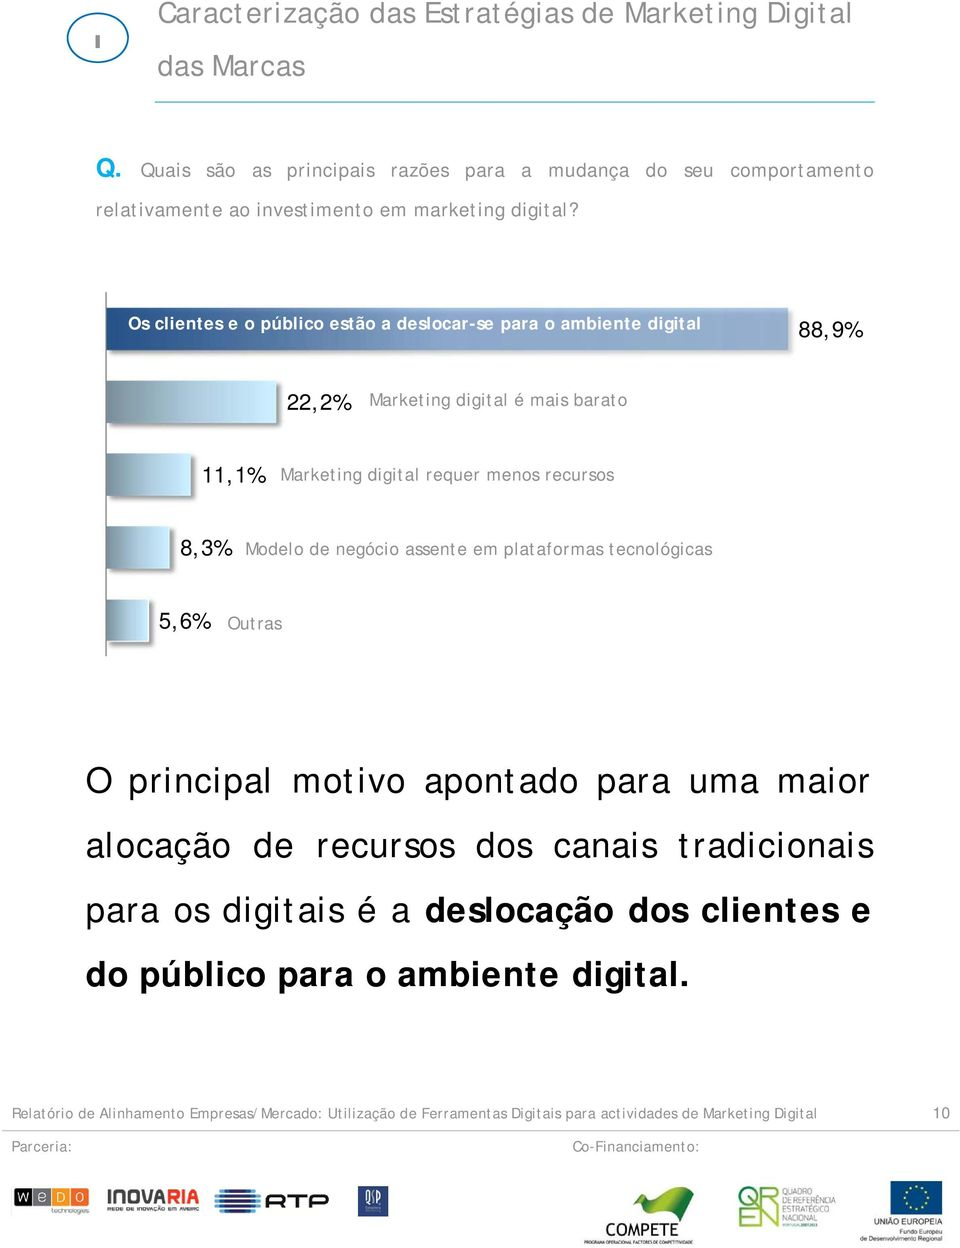 Os clientes e o público estão a deslocar-se para o ambiente digital 88,9% 22,2% Marketing digital é mais barato 11,1% Marketing digital requer menos recursos 8,3% Modelo de